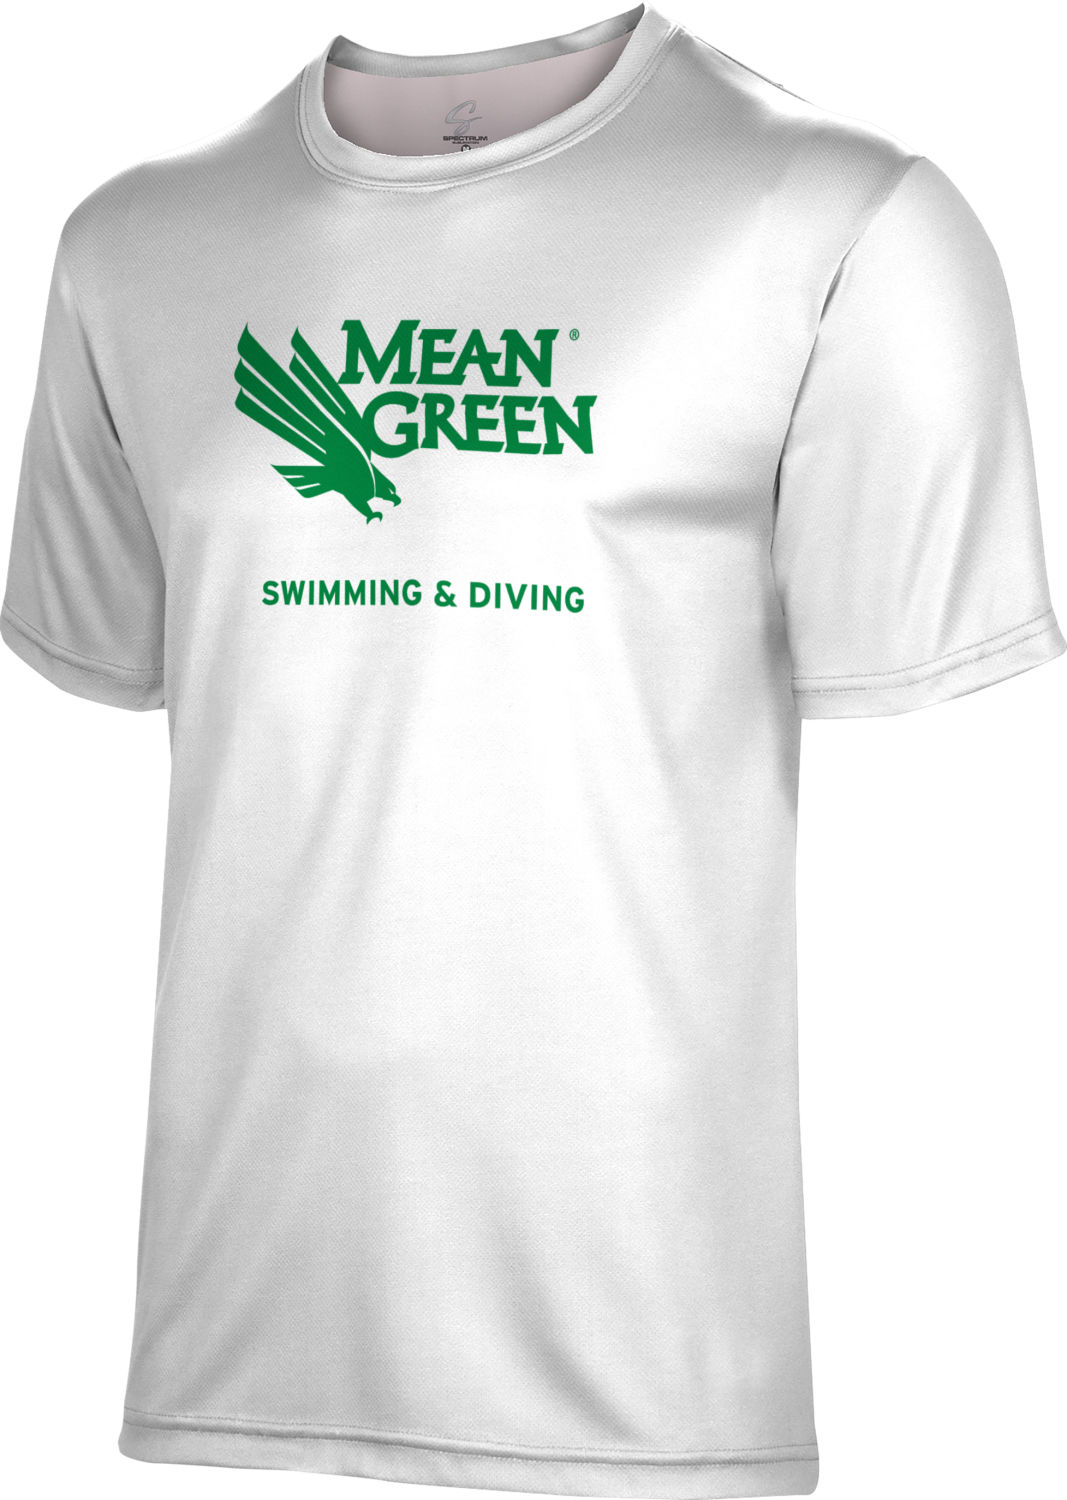 Spectrum Swimming & Diving Unisex 50/50 Distressed Short Sleeve Tee